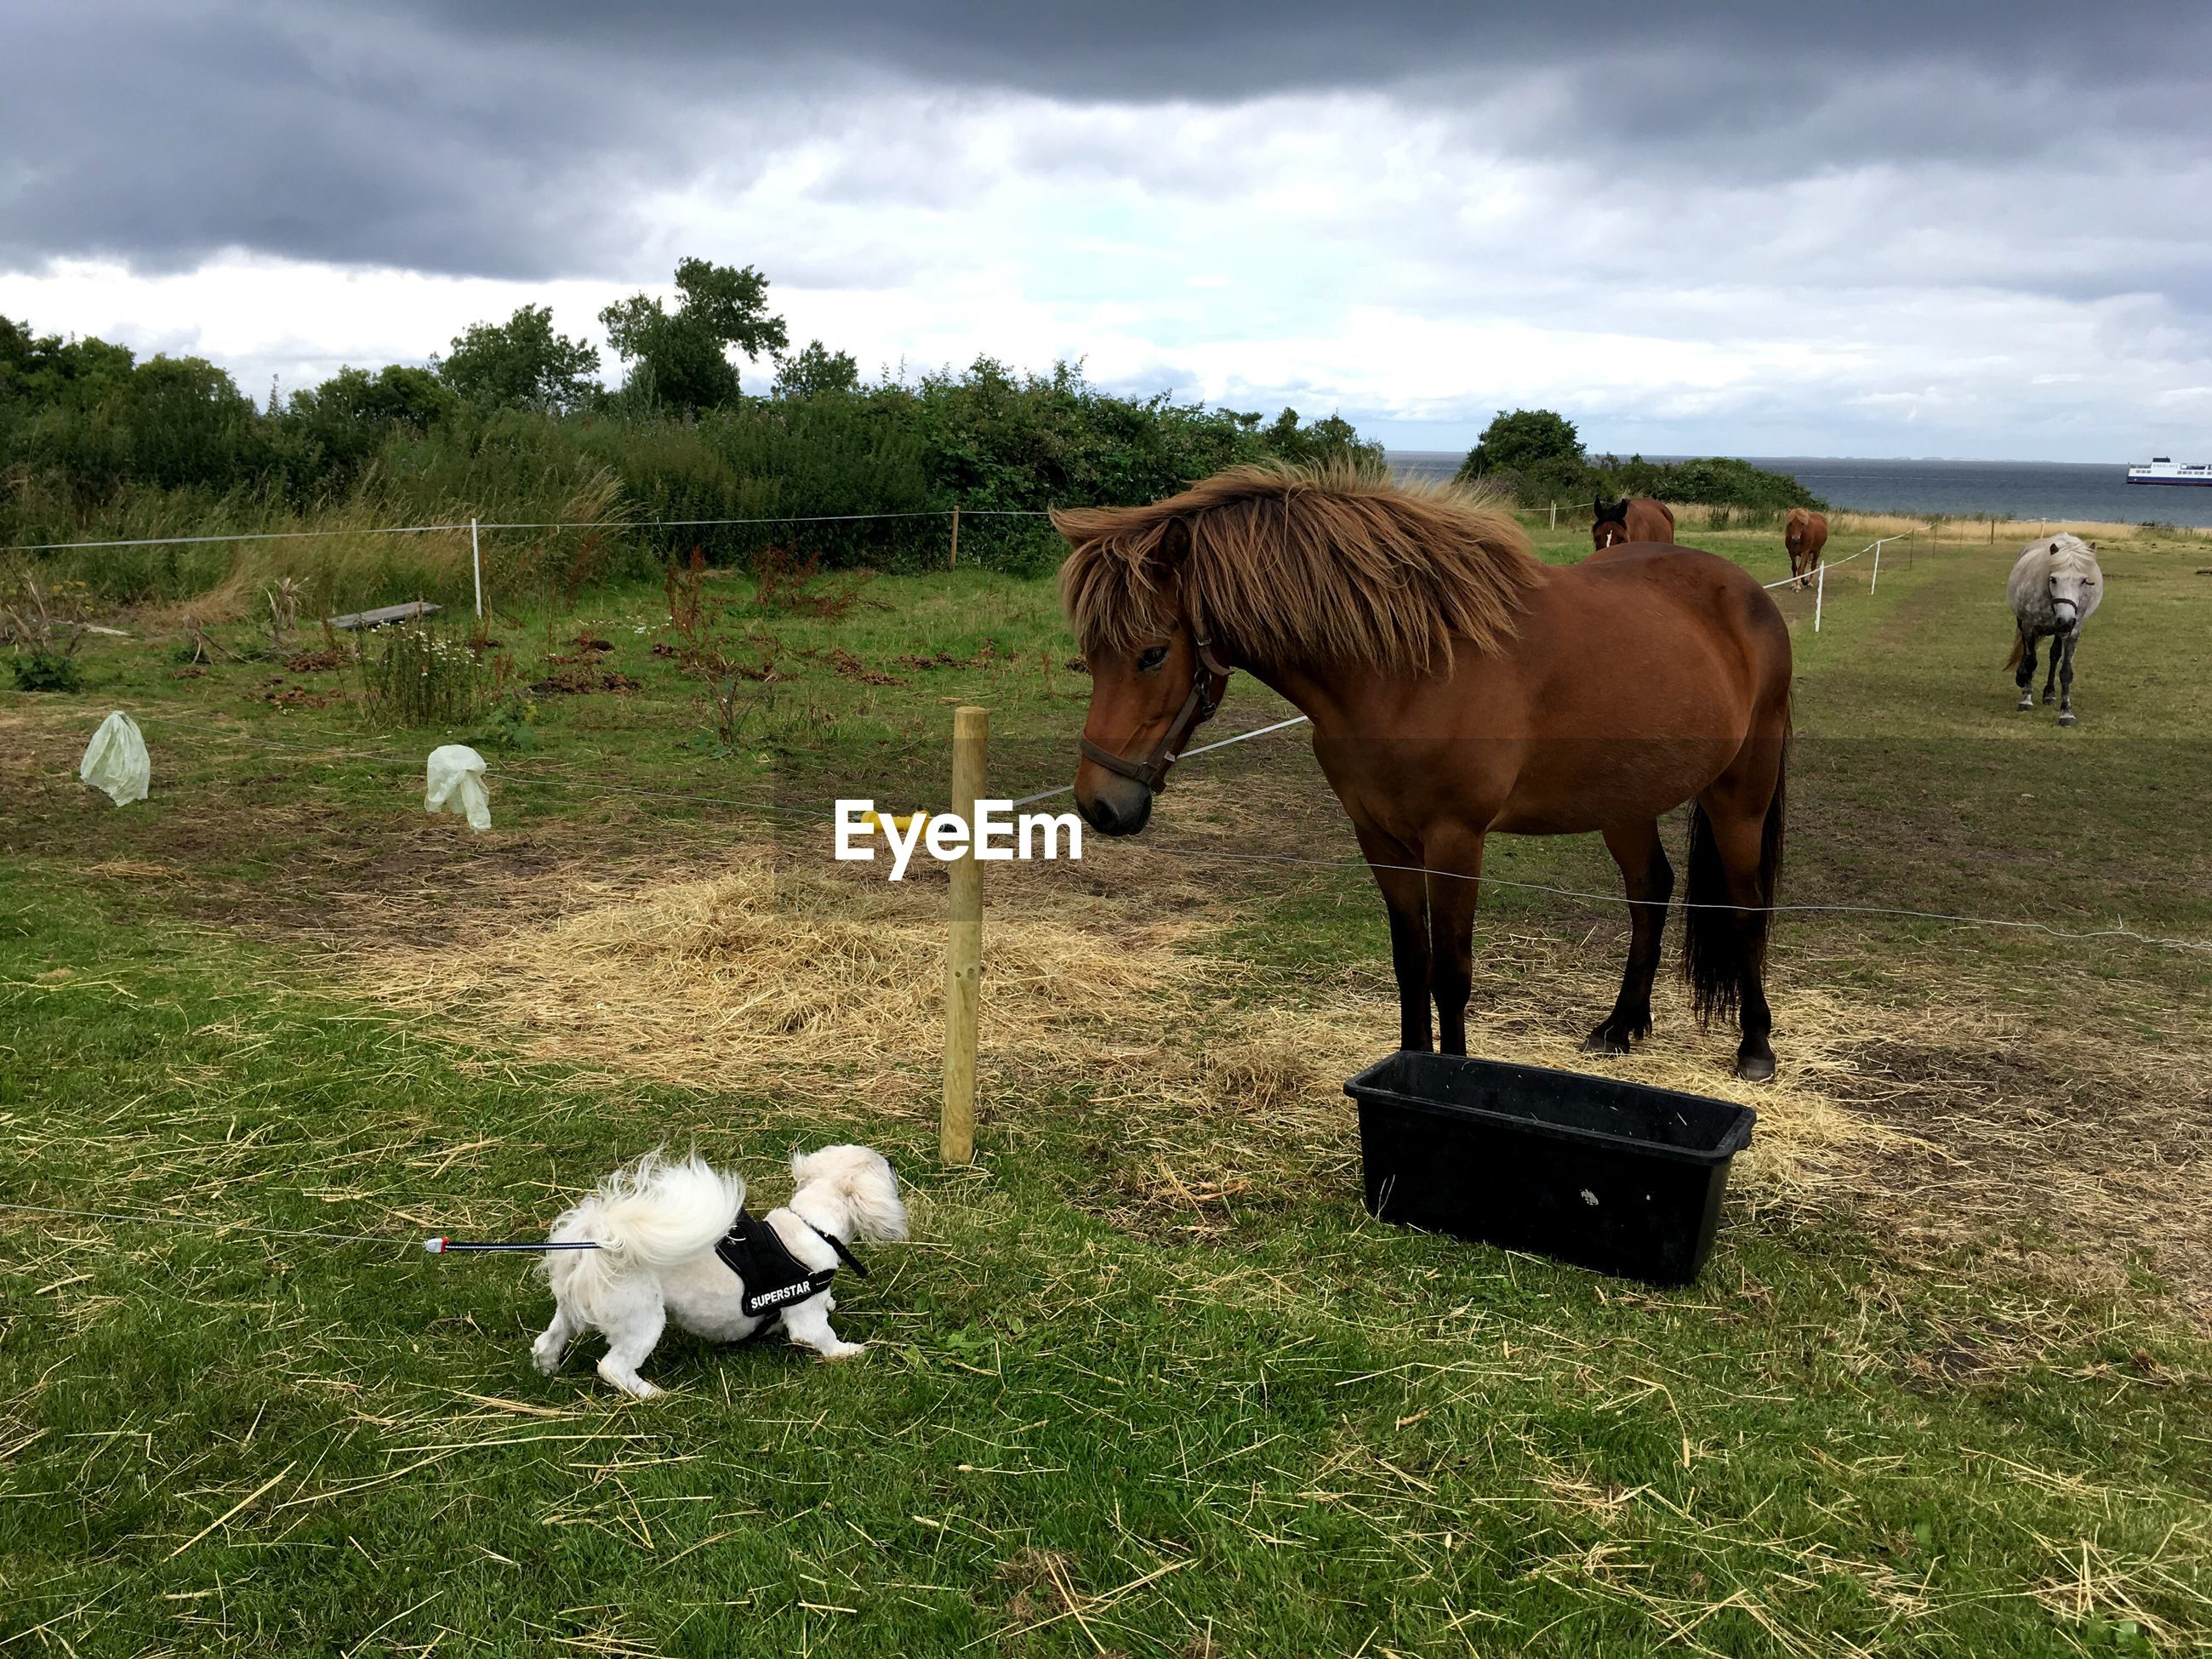 Horses and dog on field against cloudy sky